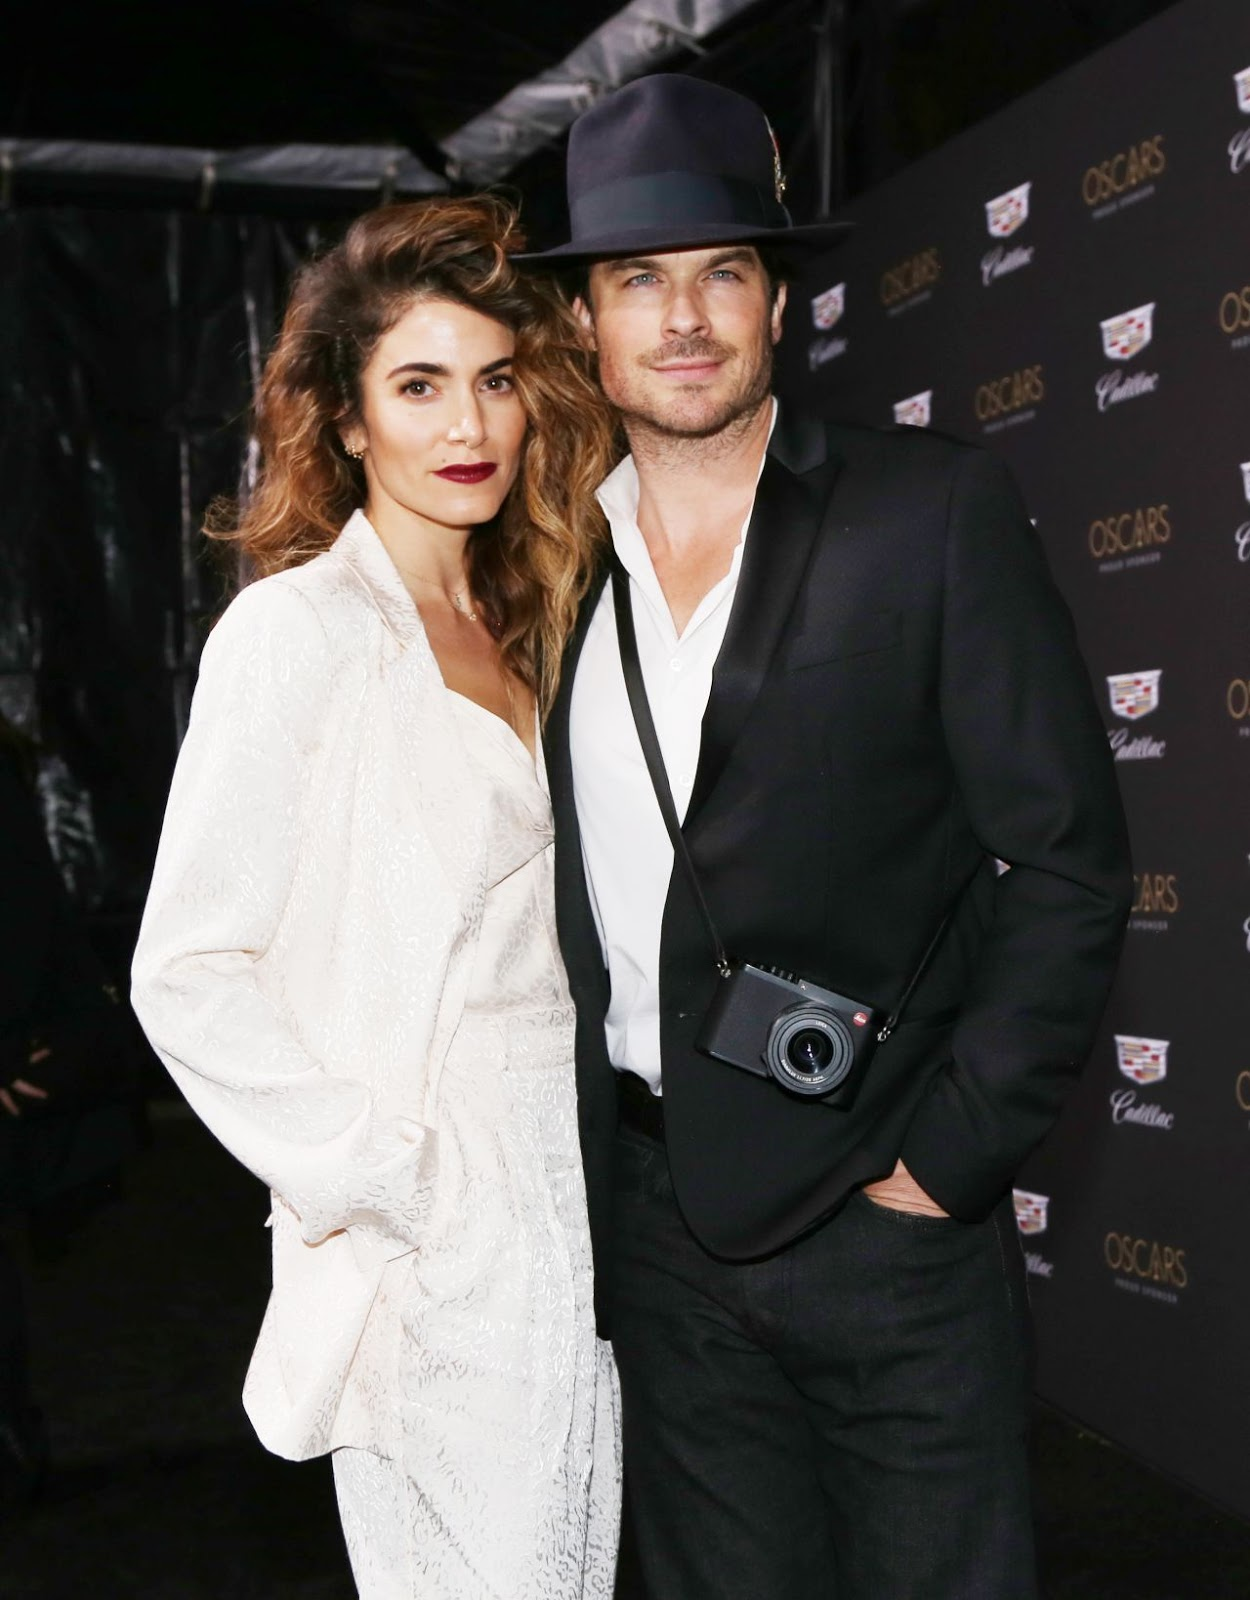 Nikki Reed dazzles in a white print suit as she joins husband Ian Somerhalder at Cadillac Oscar Party in Los Angeles